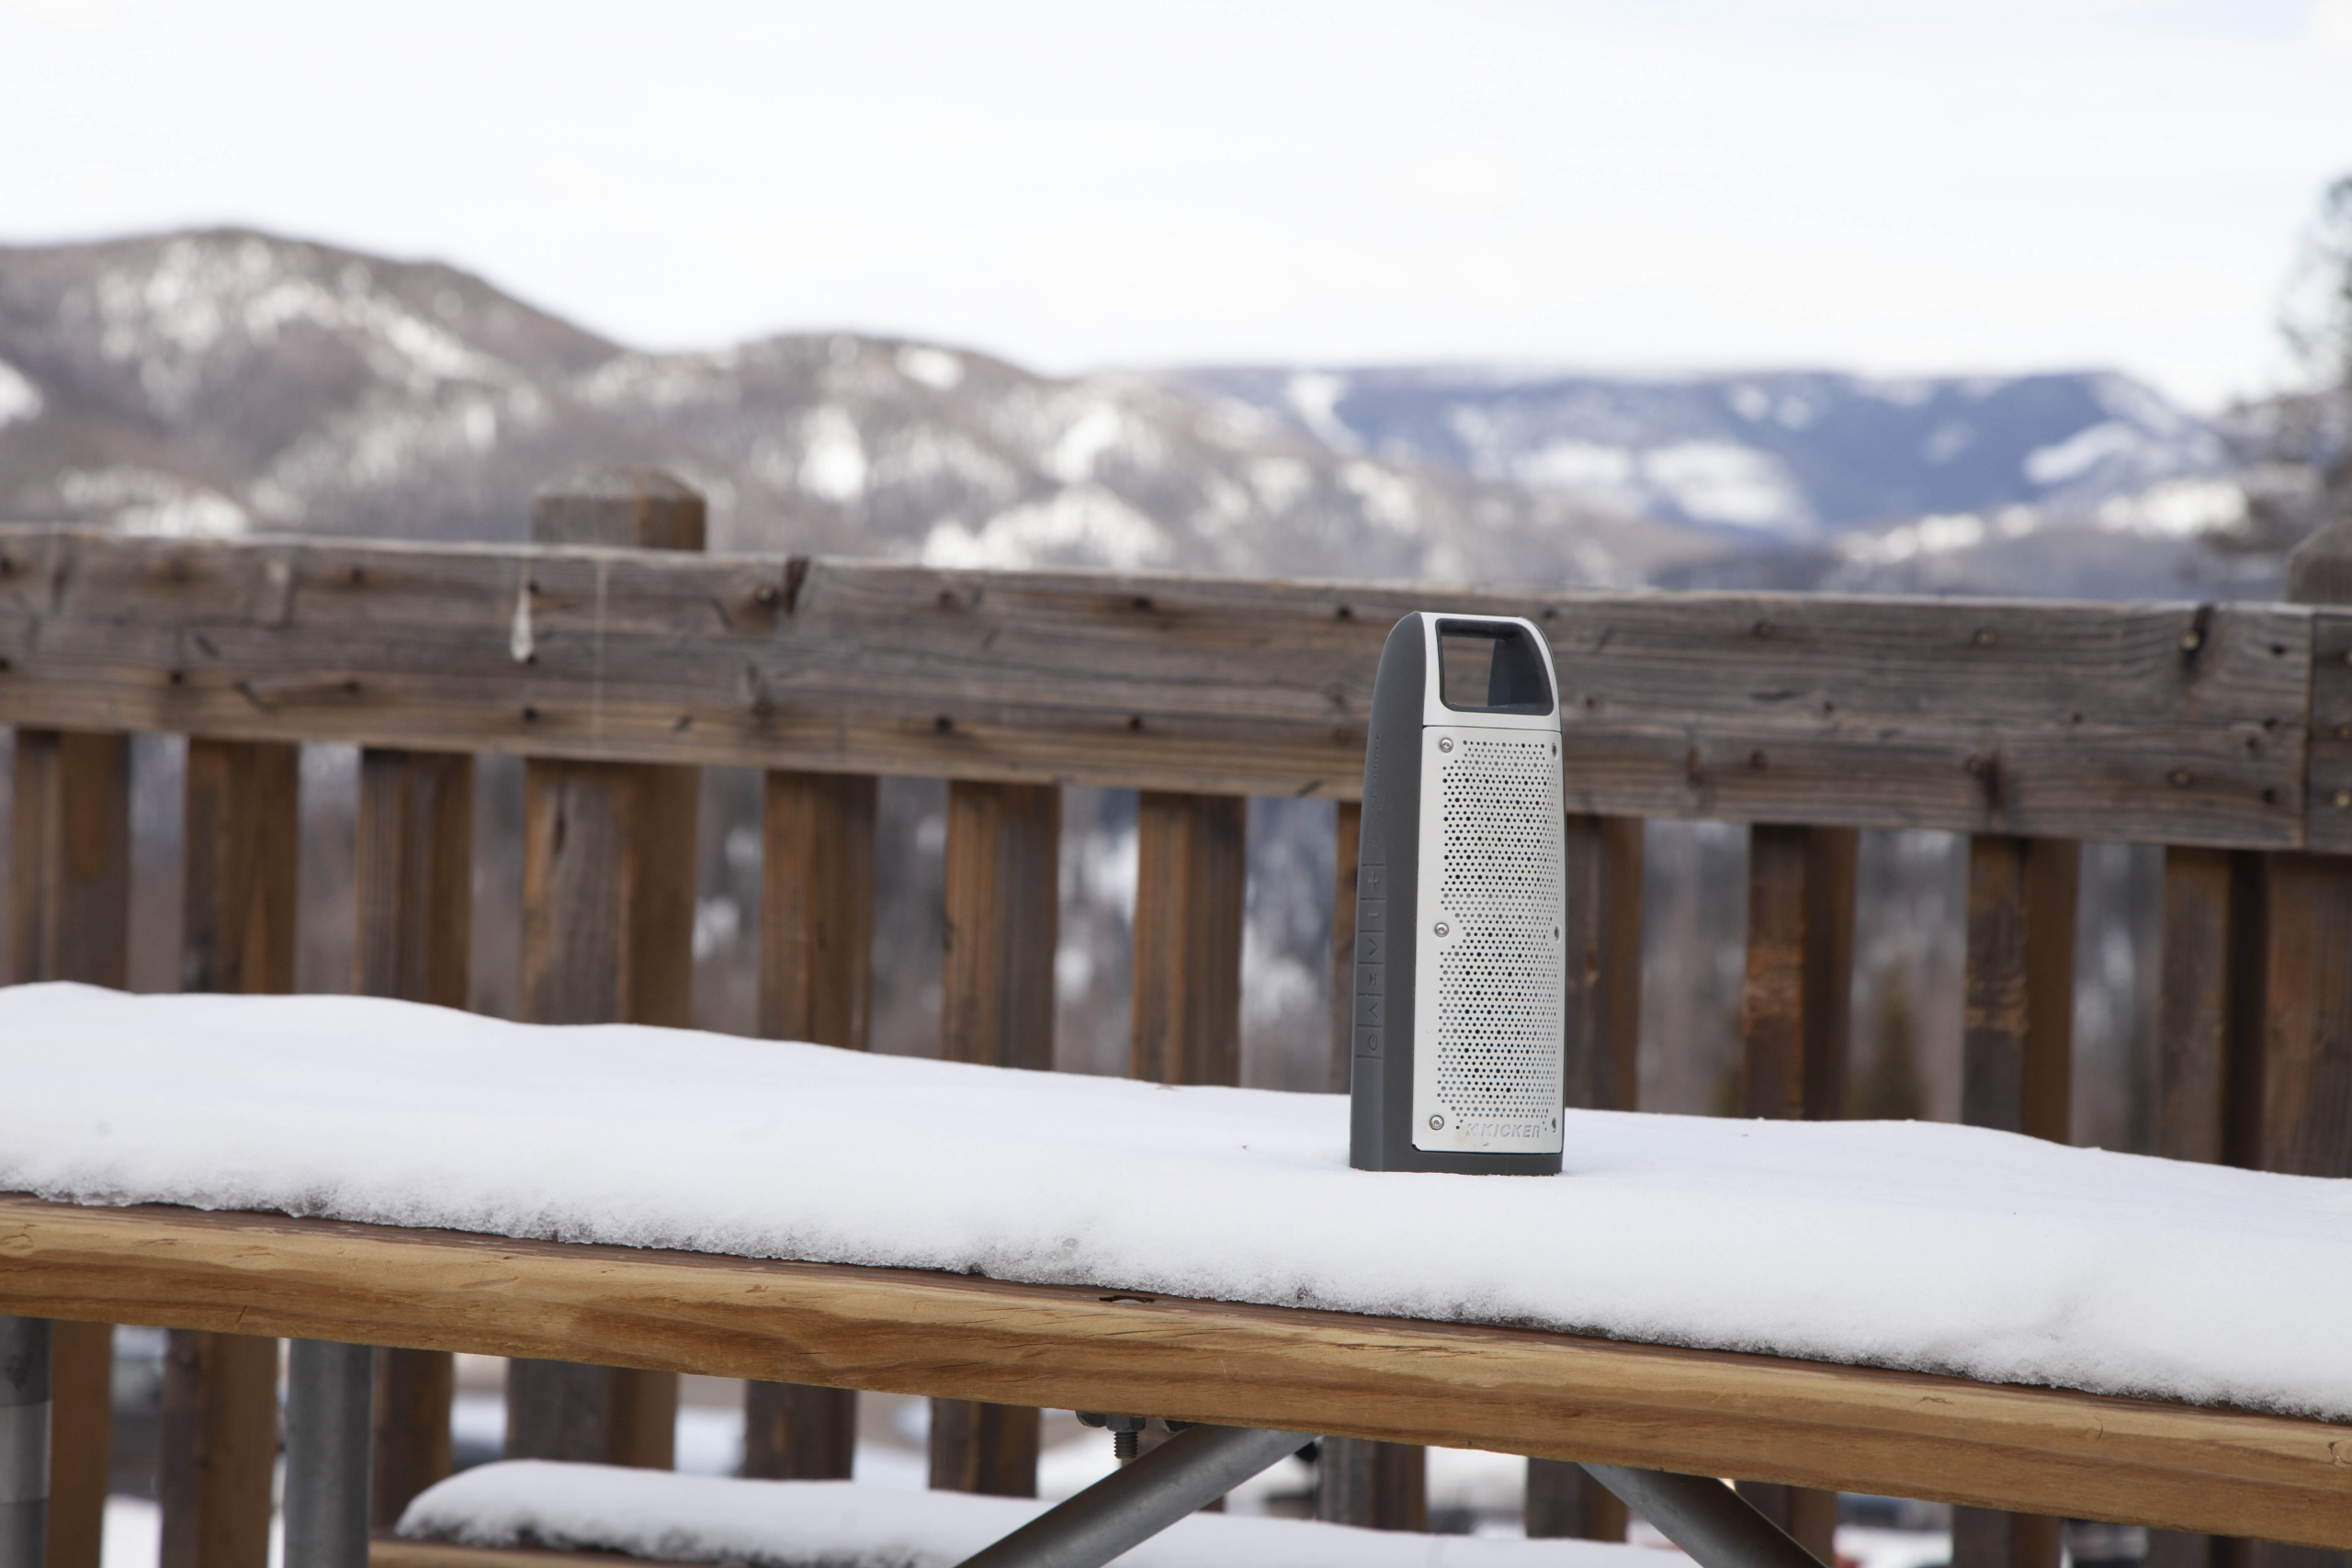 A Kicker Bullfrog speaker sits on a snowy picnic table on an outside deck